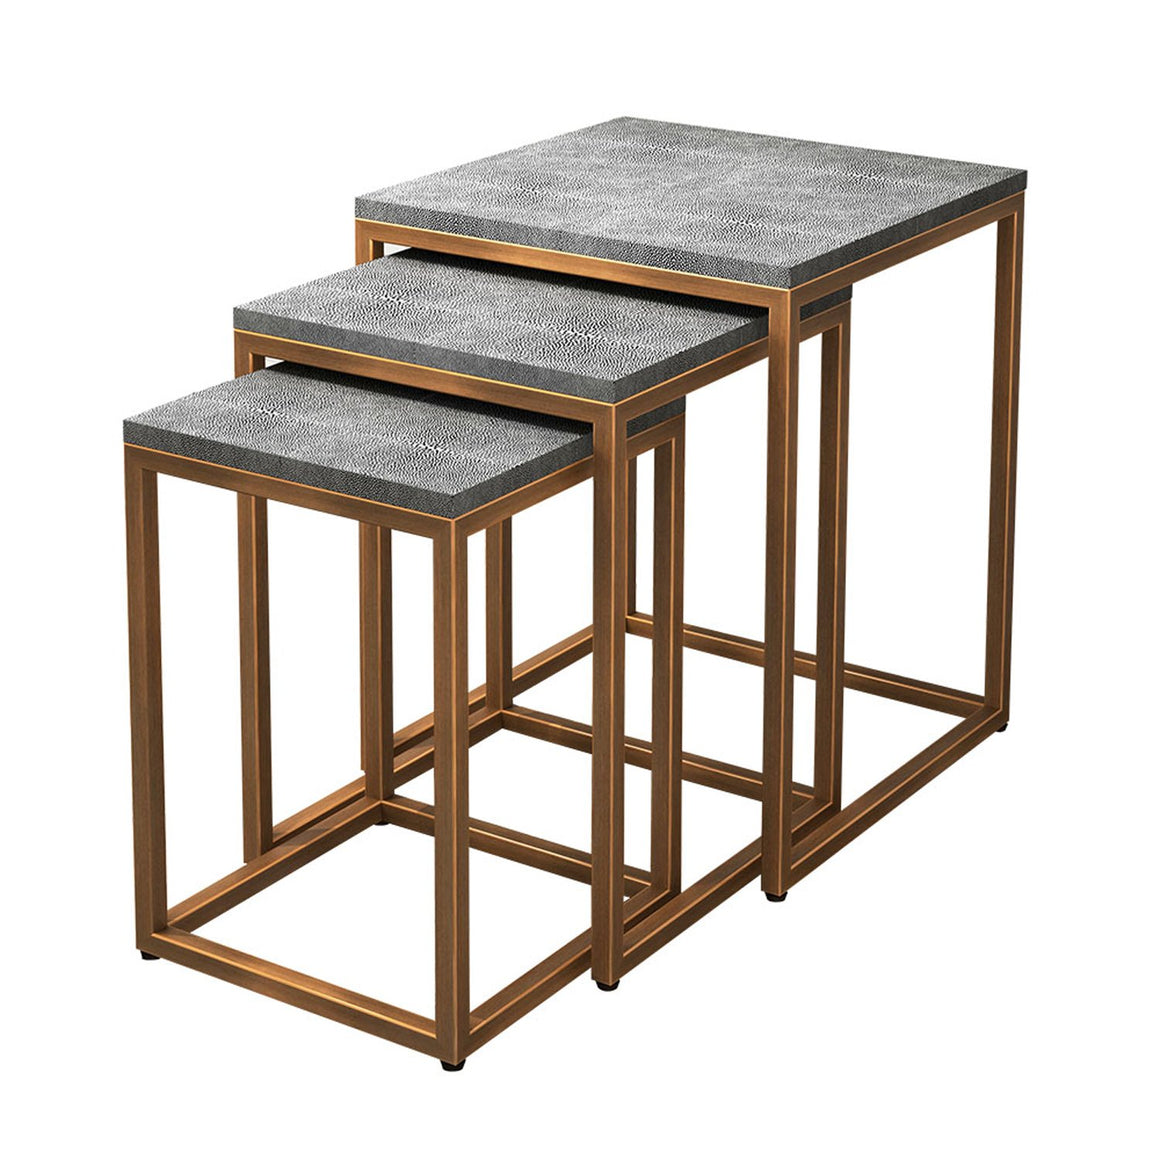 Ambiente Shagreen Nesting Side Table, Set of 3